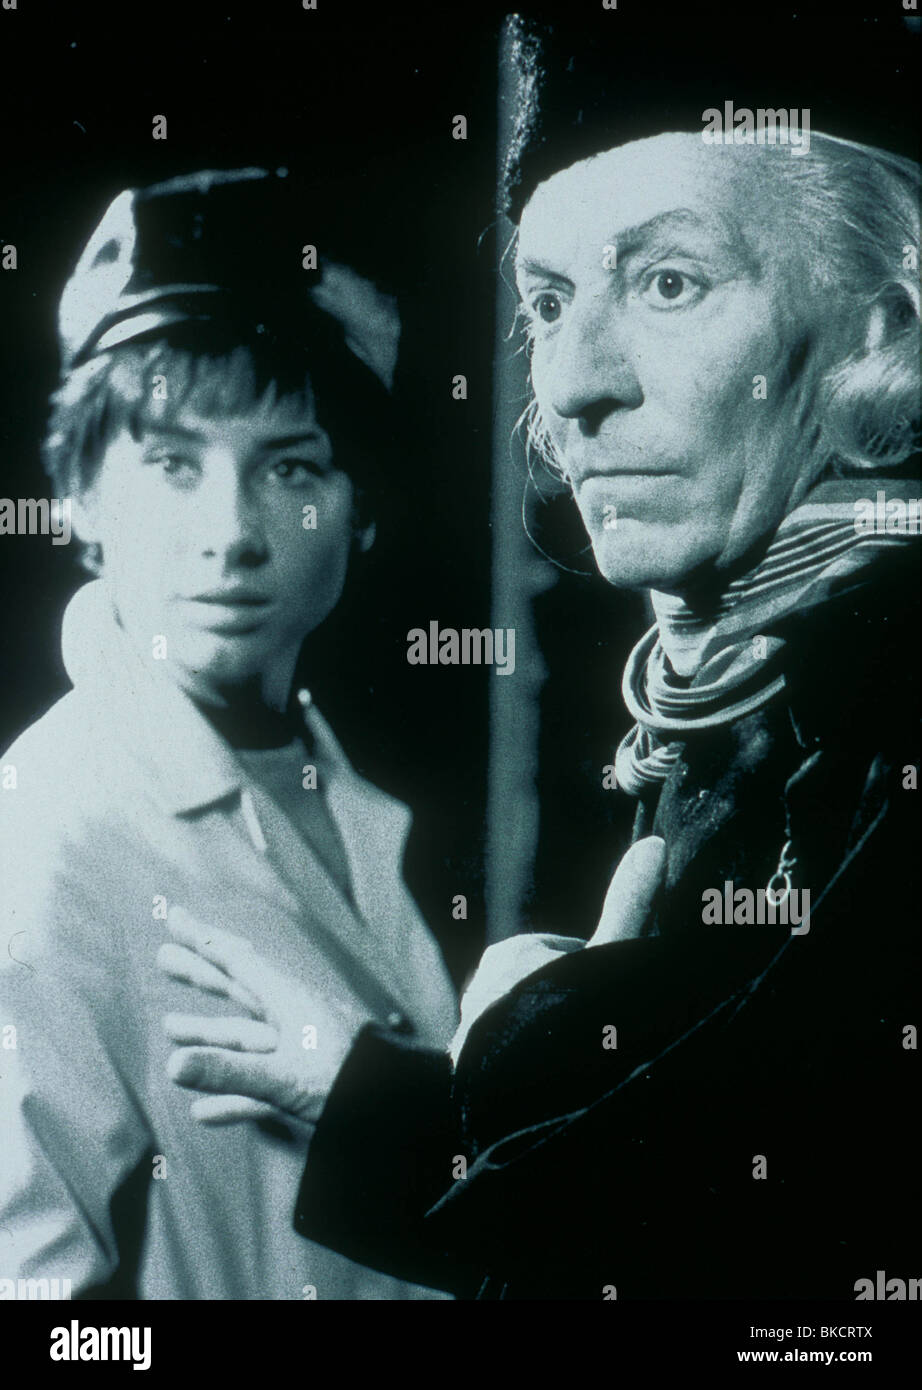 DR WHO (TV) DOCTOR WHO (ALT) CAROL ANN FORD, WILLIAM HARTNELL DRW 009 - Stock Image